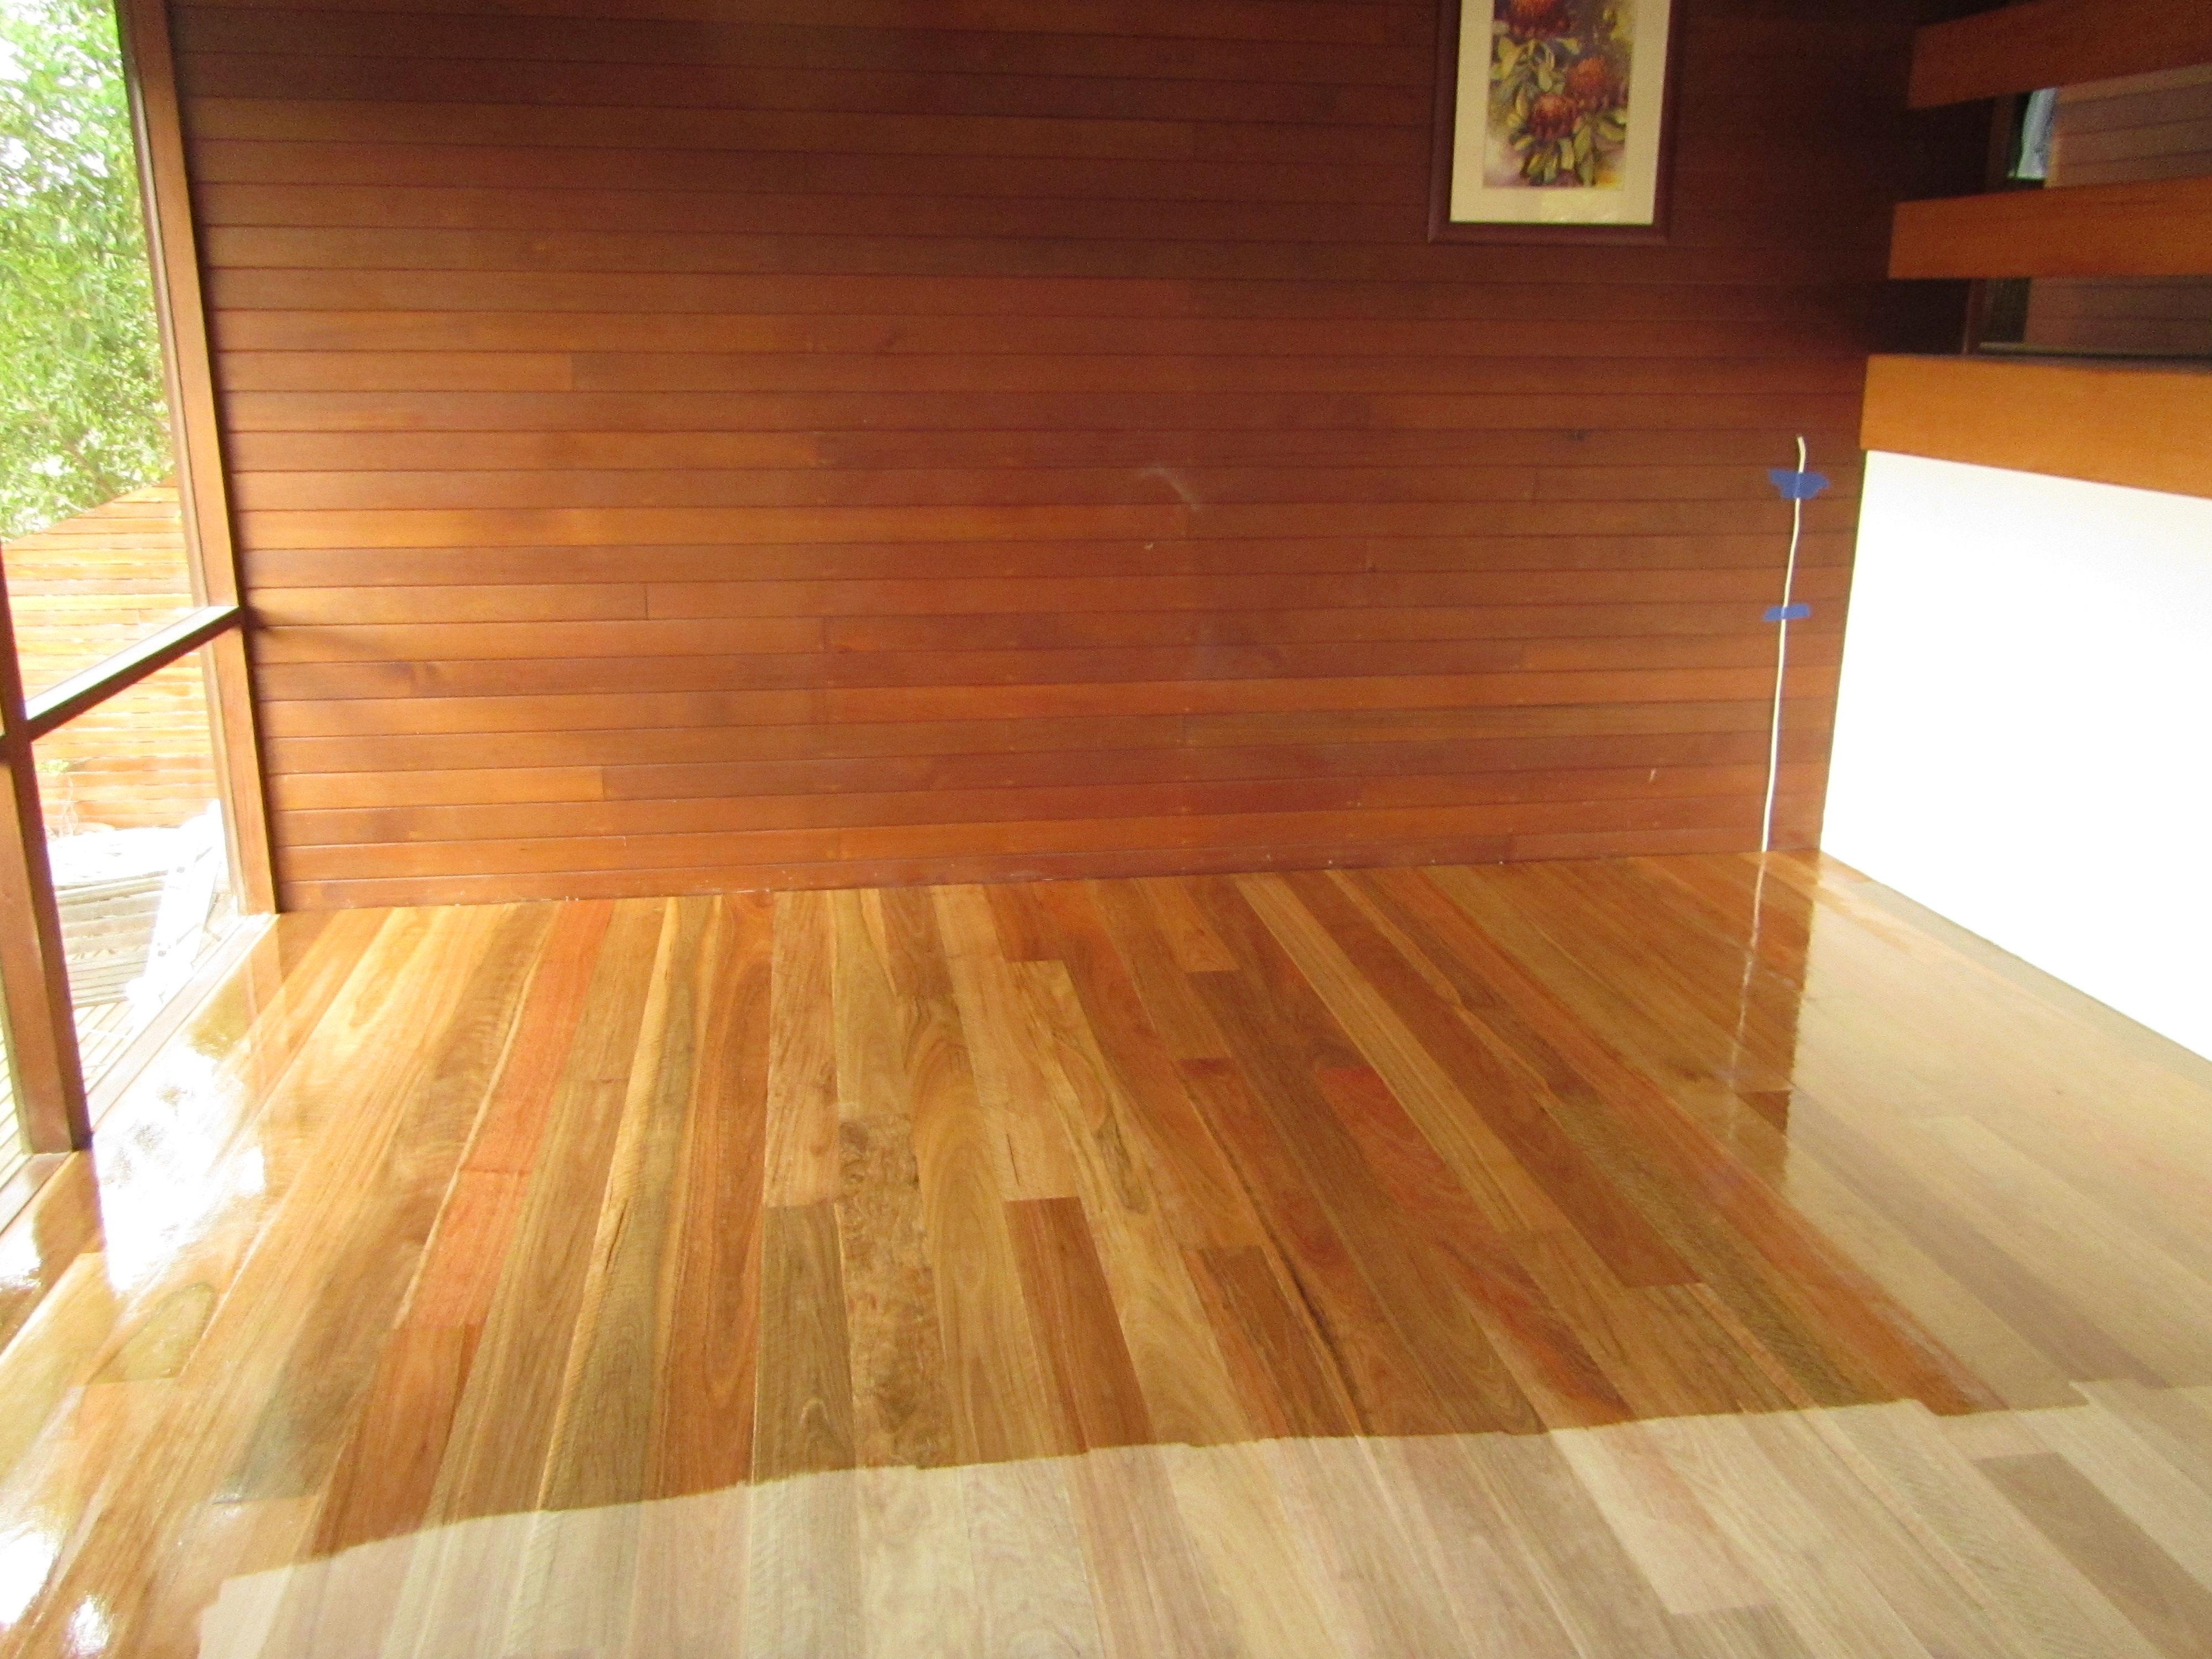 Tung Oil For Wood Floors